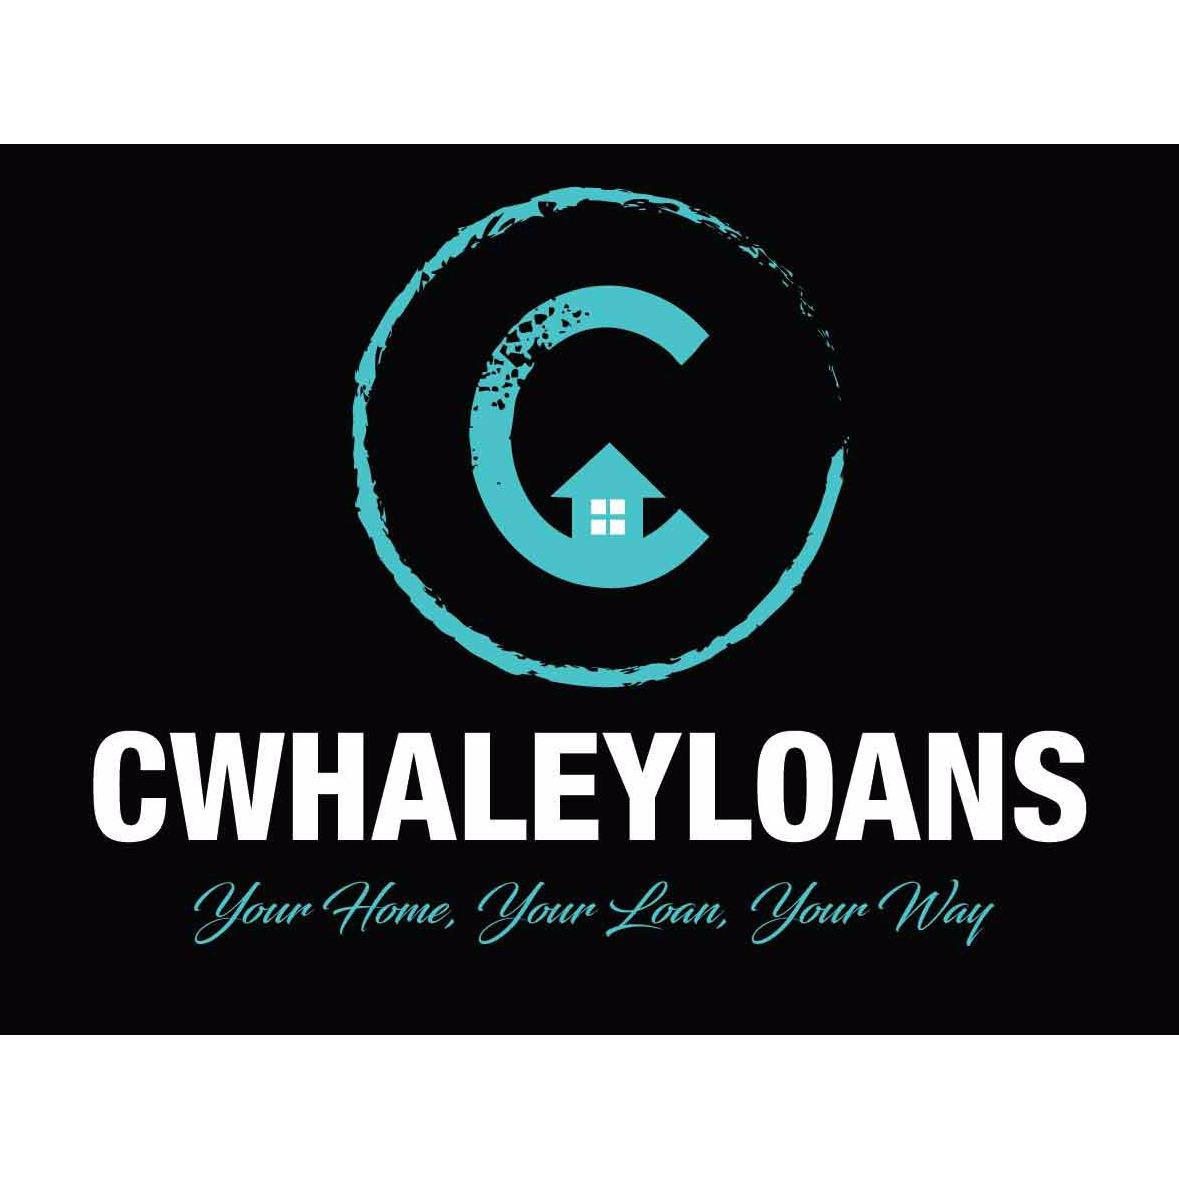 CWhaley Loans